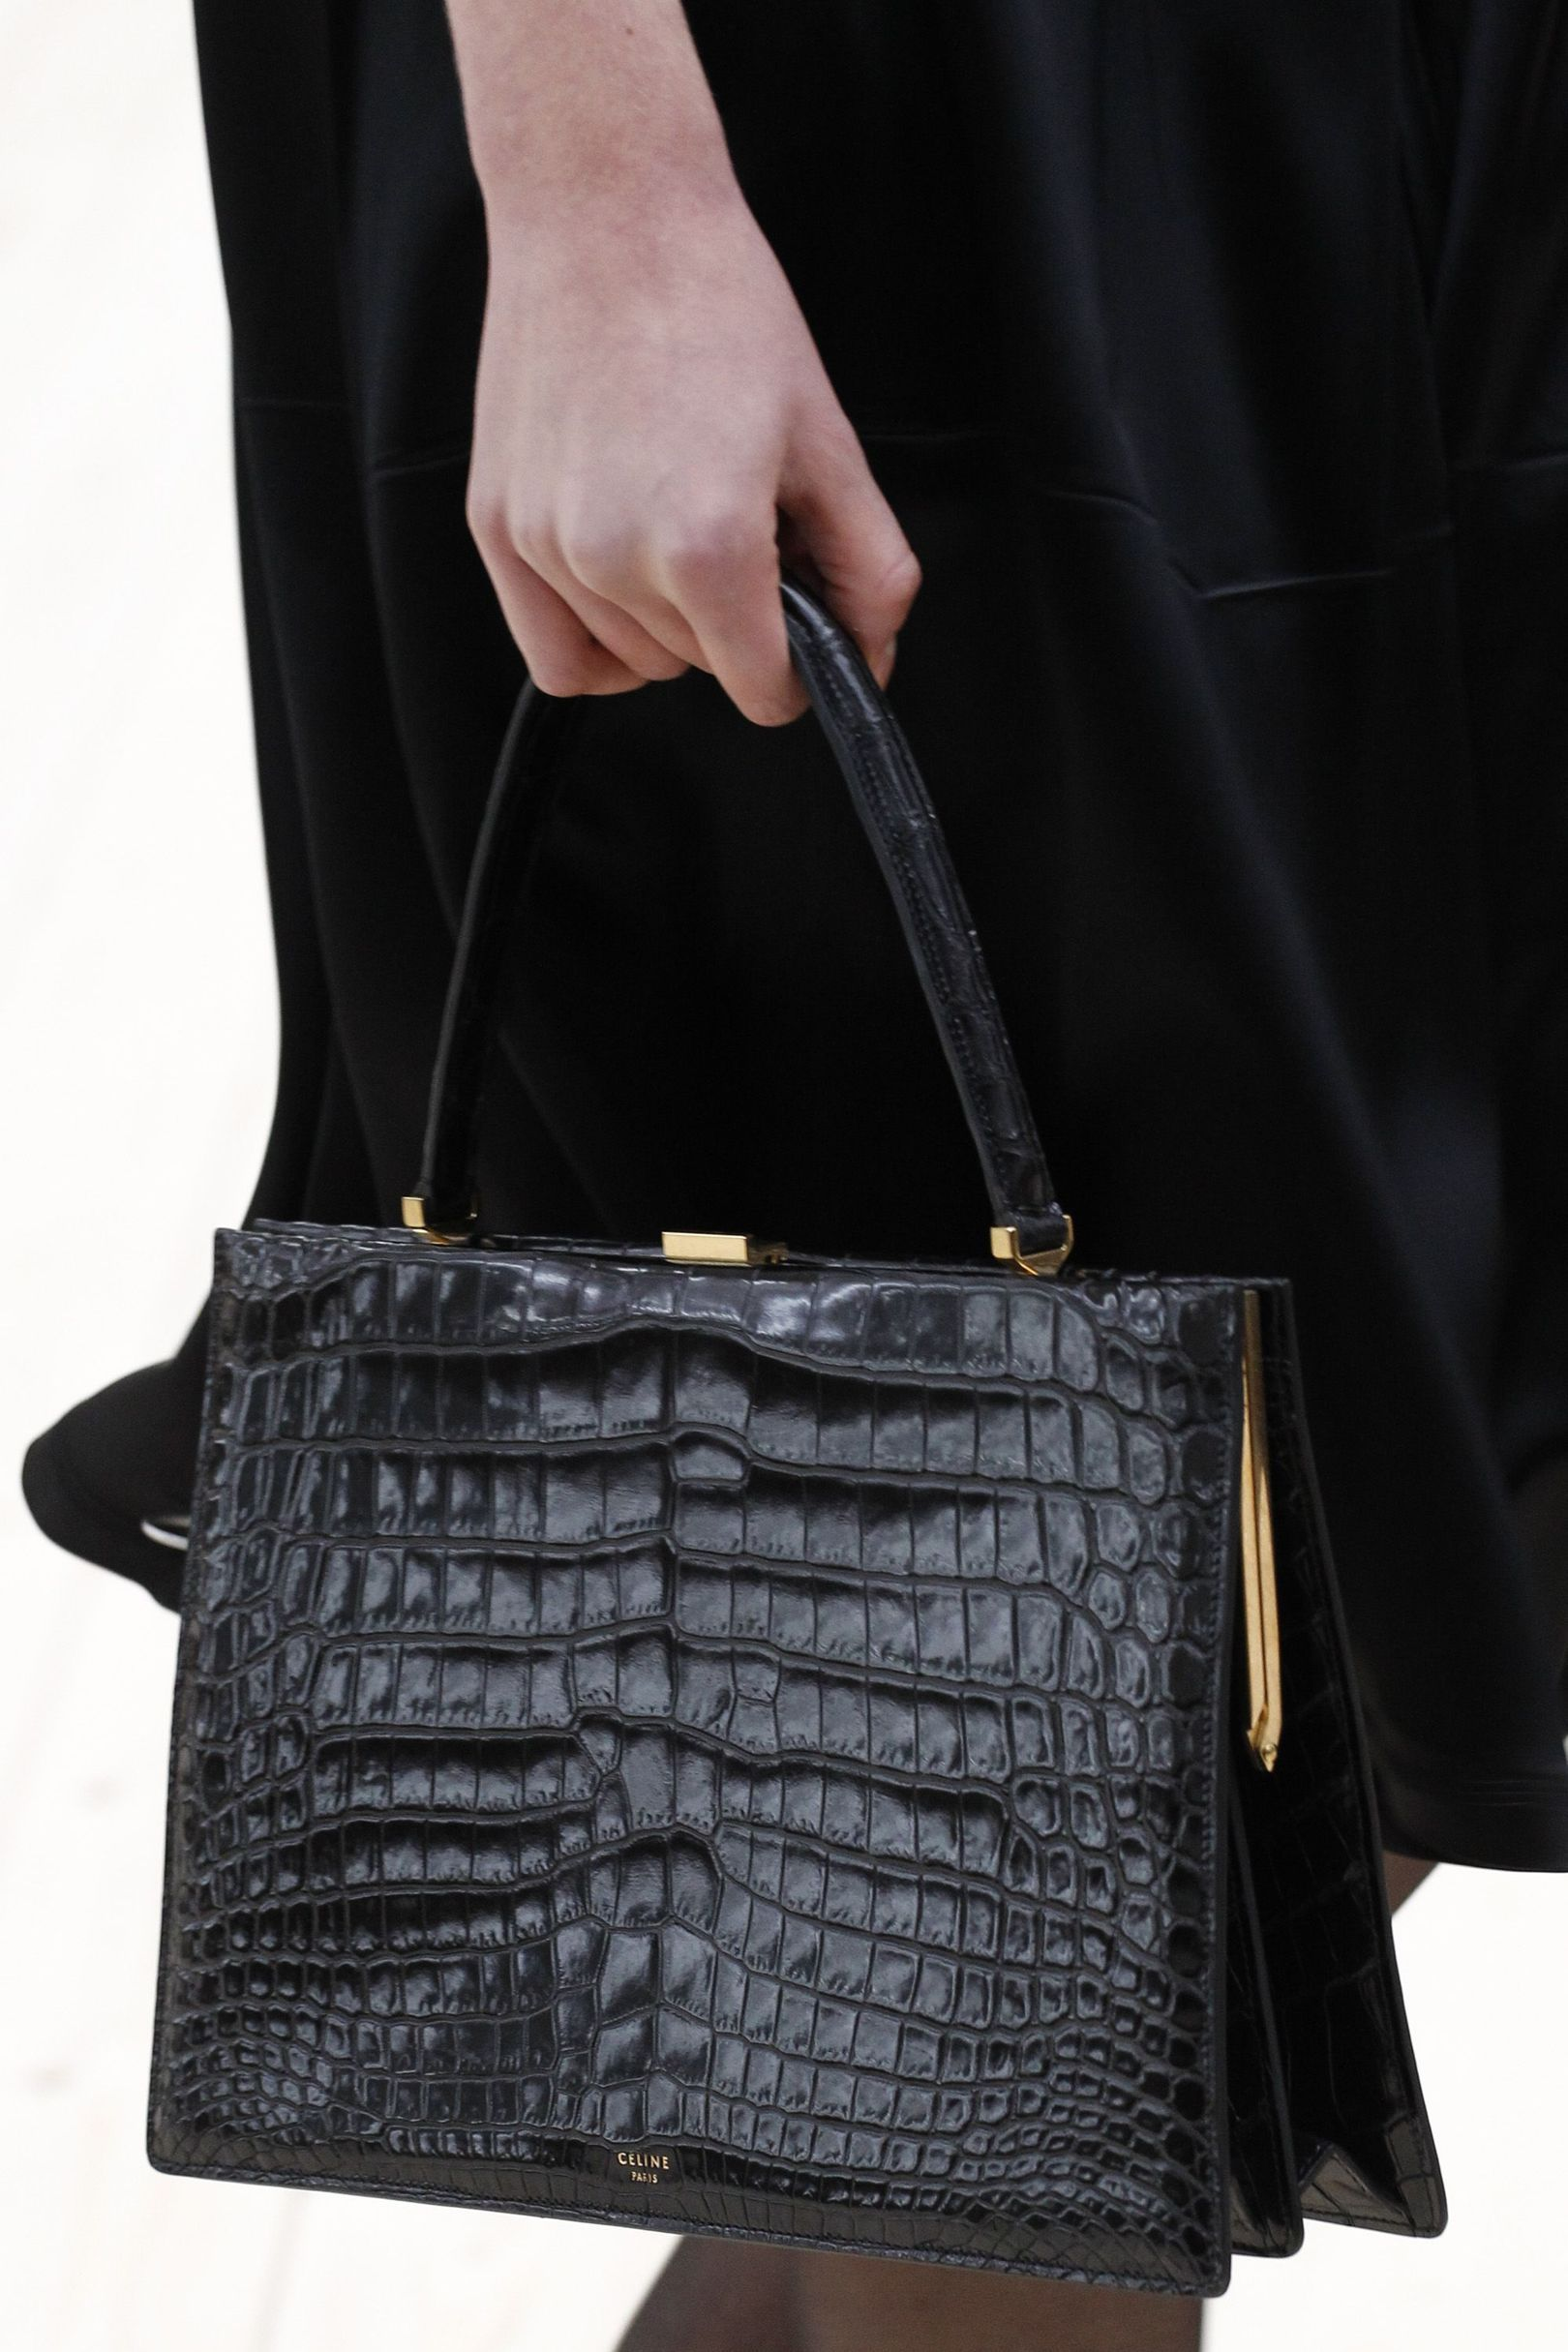 f8f2d1fa28 Vogue s Ultimate Spring Summer 2017 Bags Trend Guide